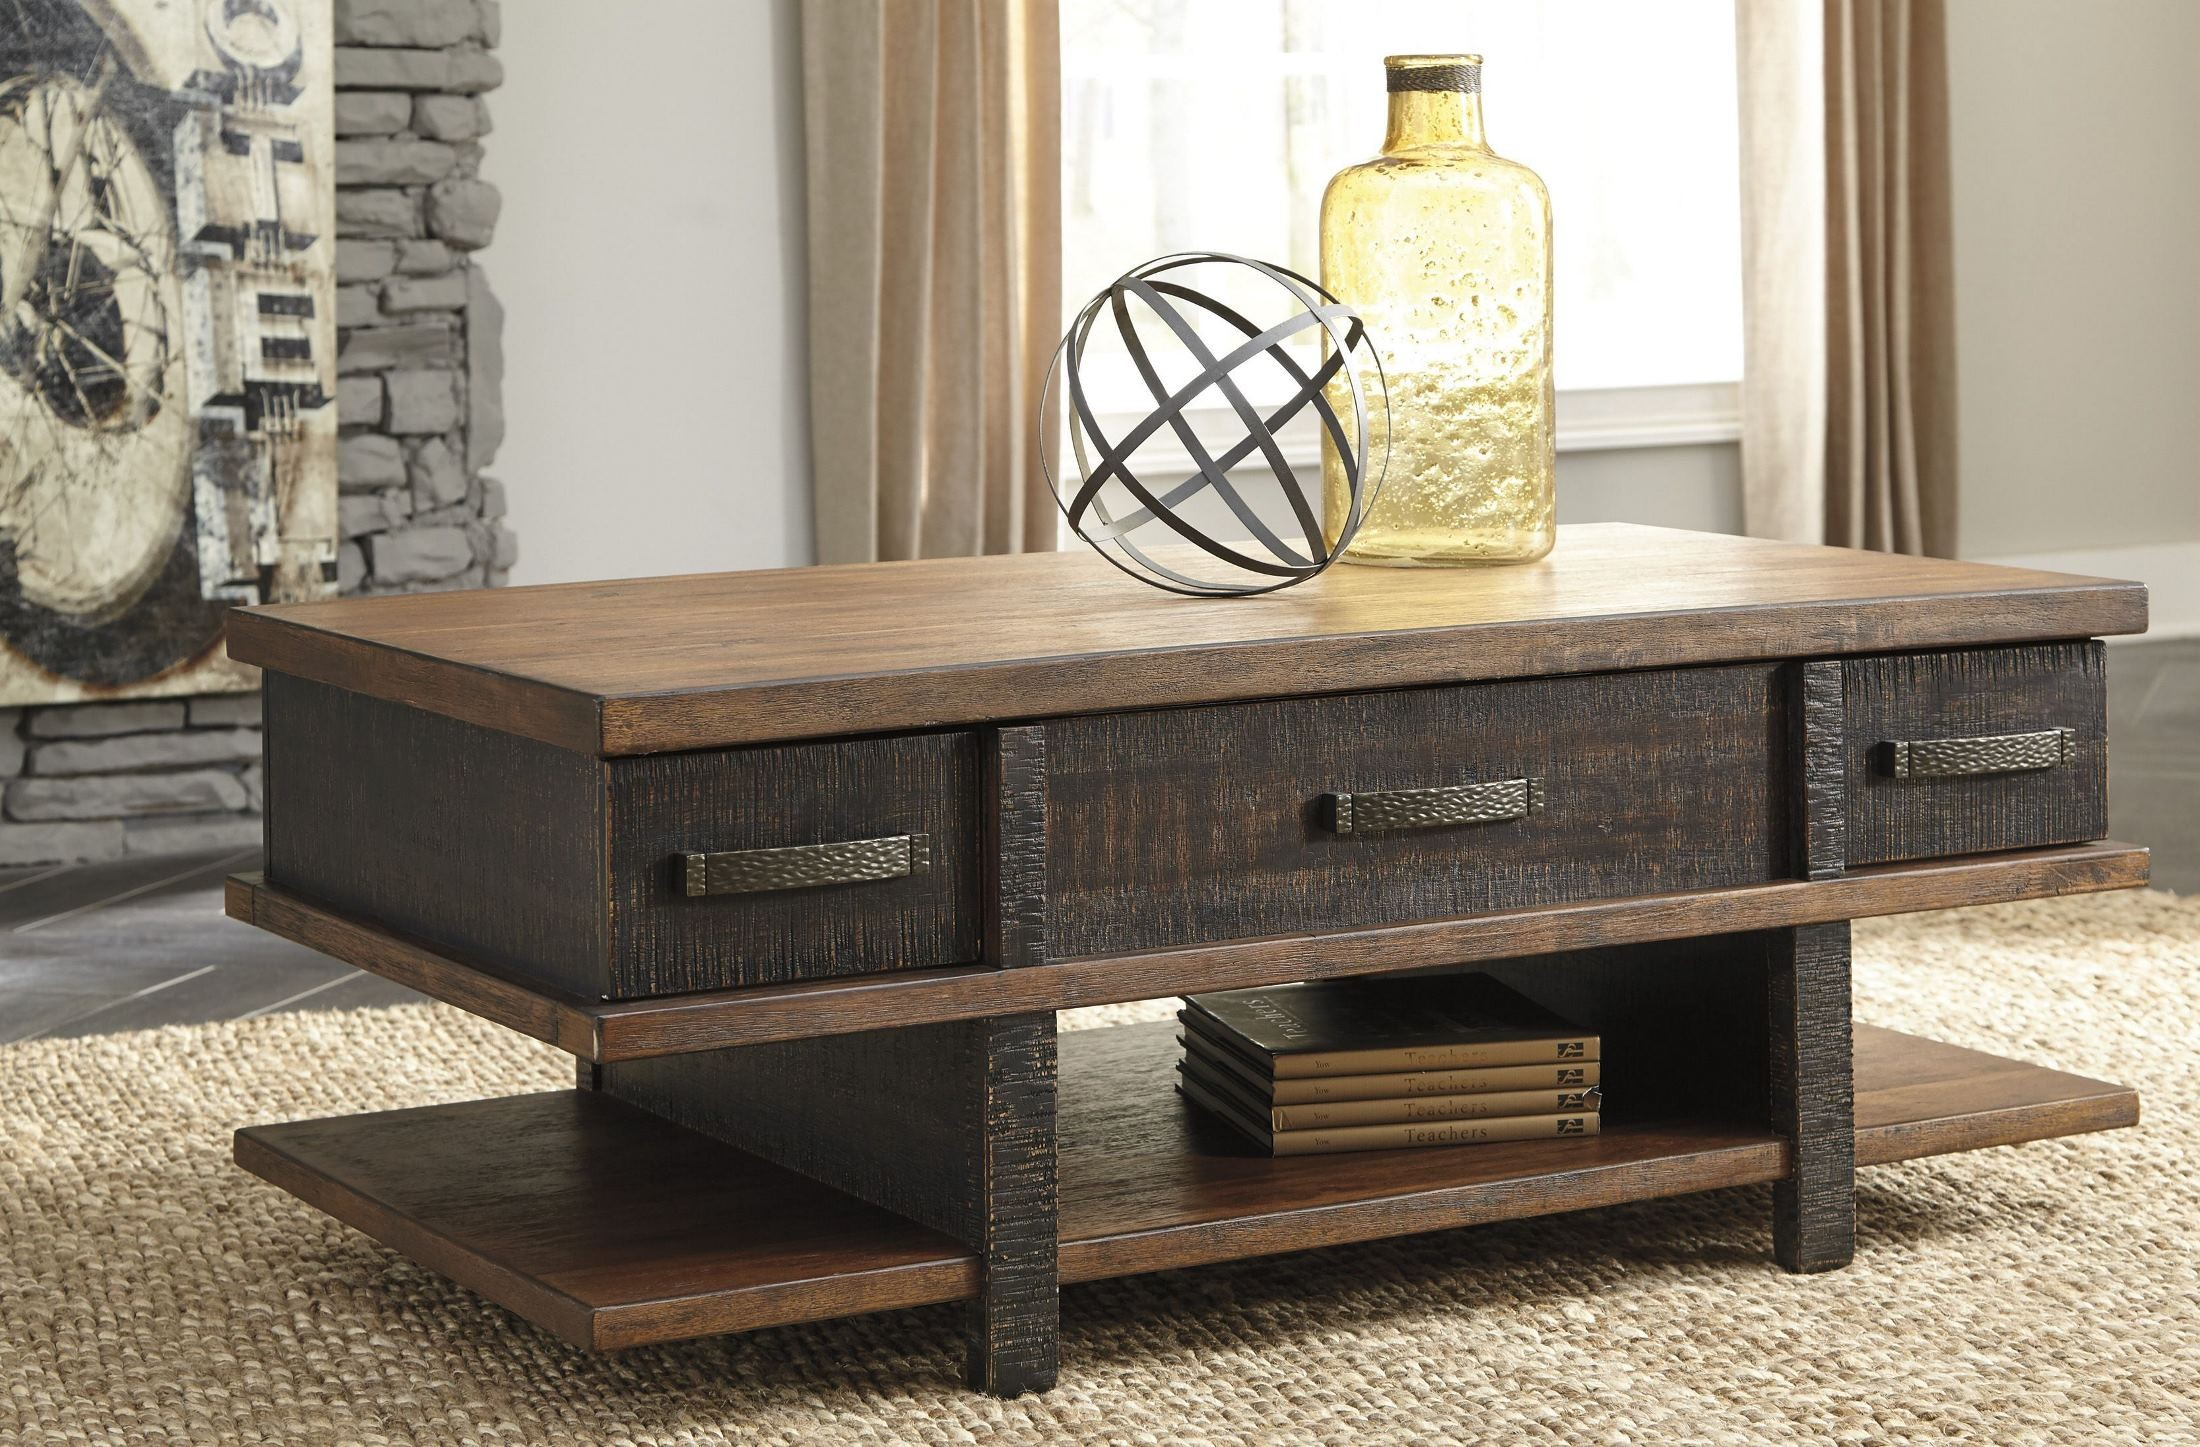 Stanah Two tone Lift Top Cocktail Table from Ashley